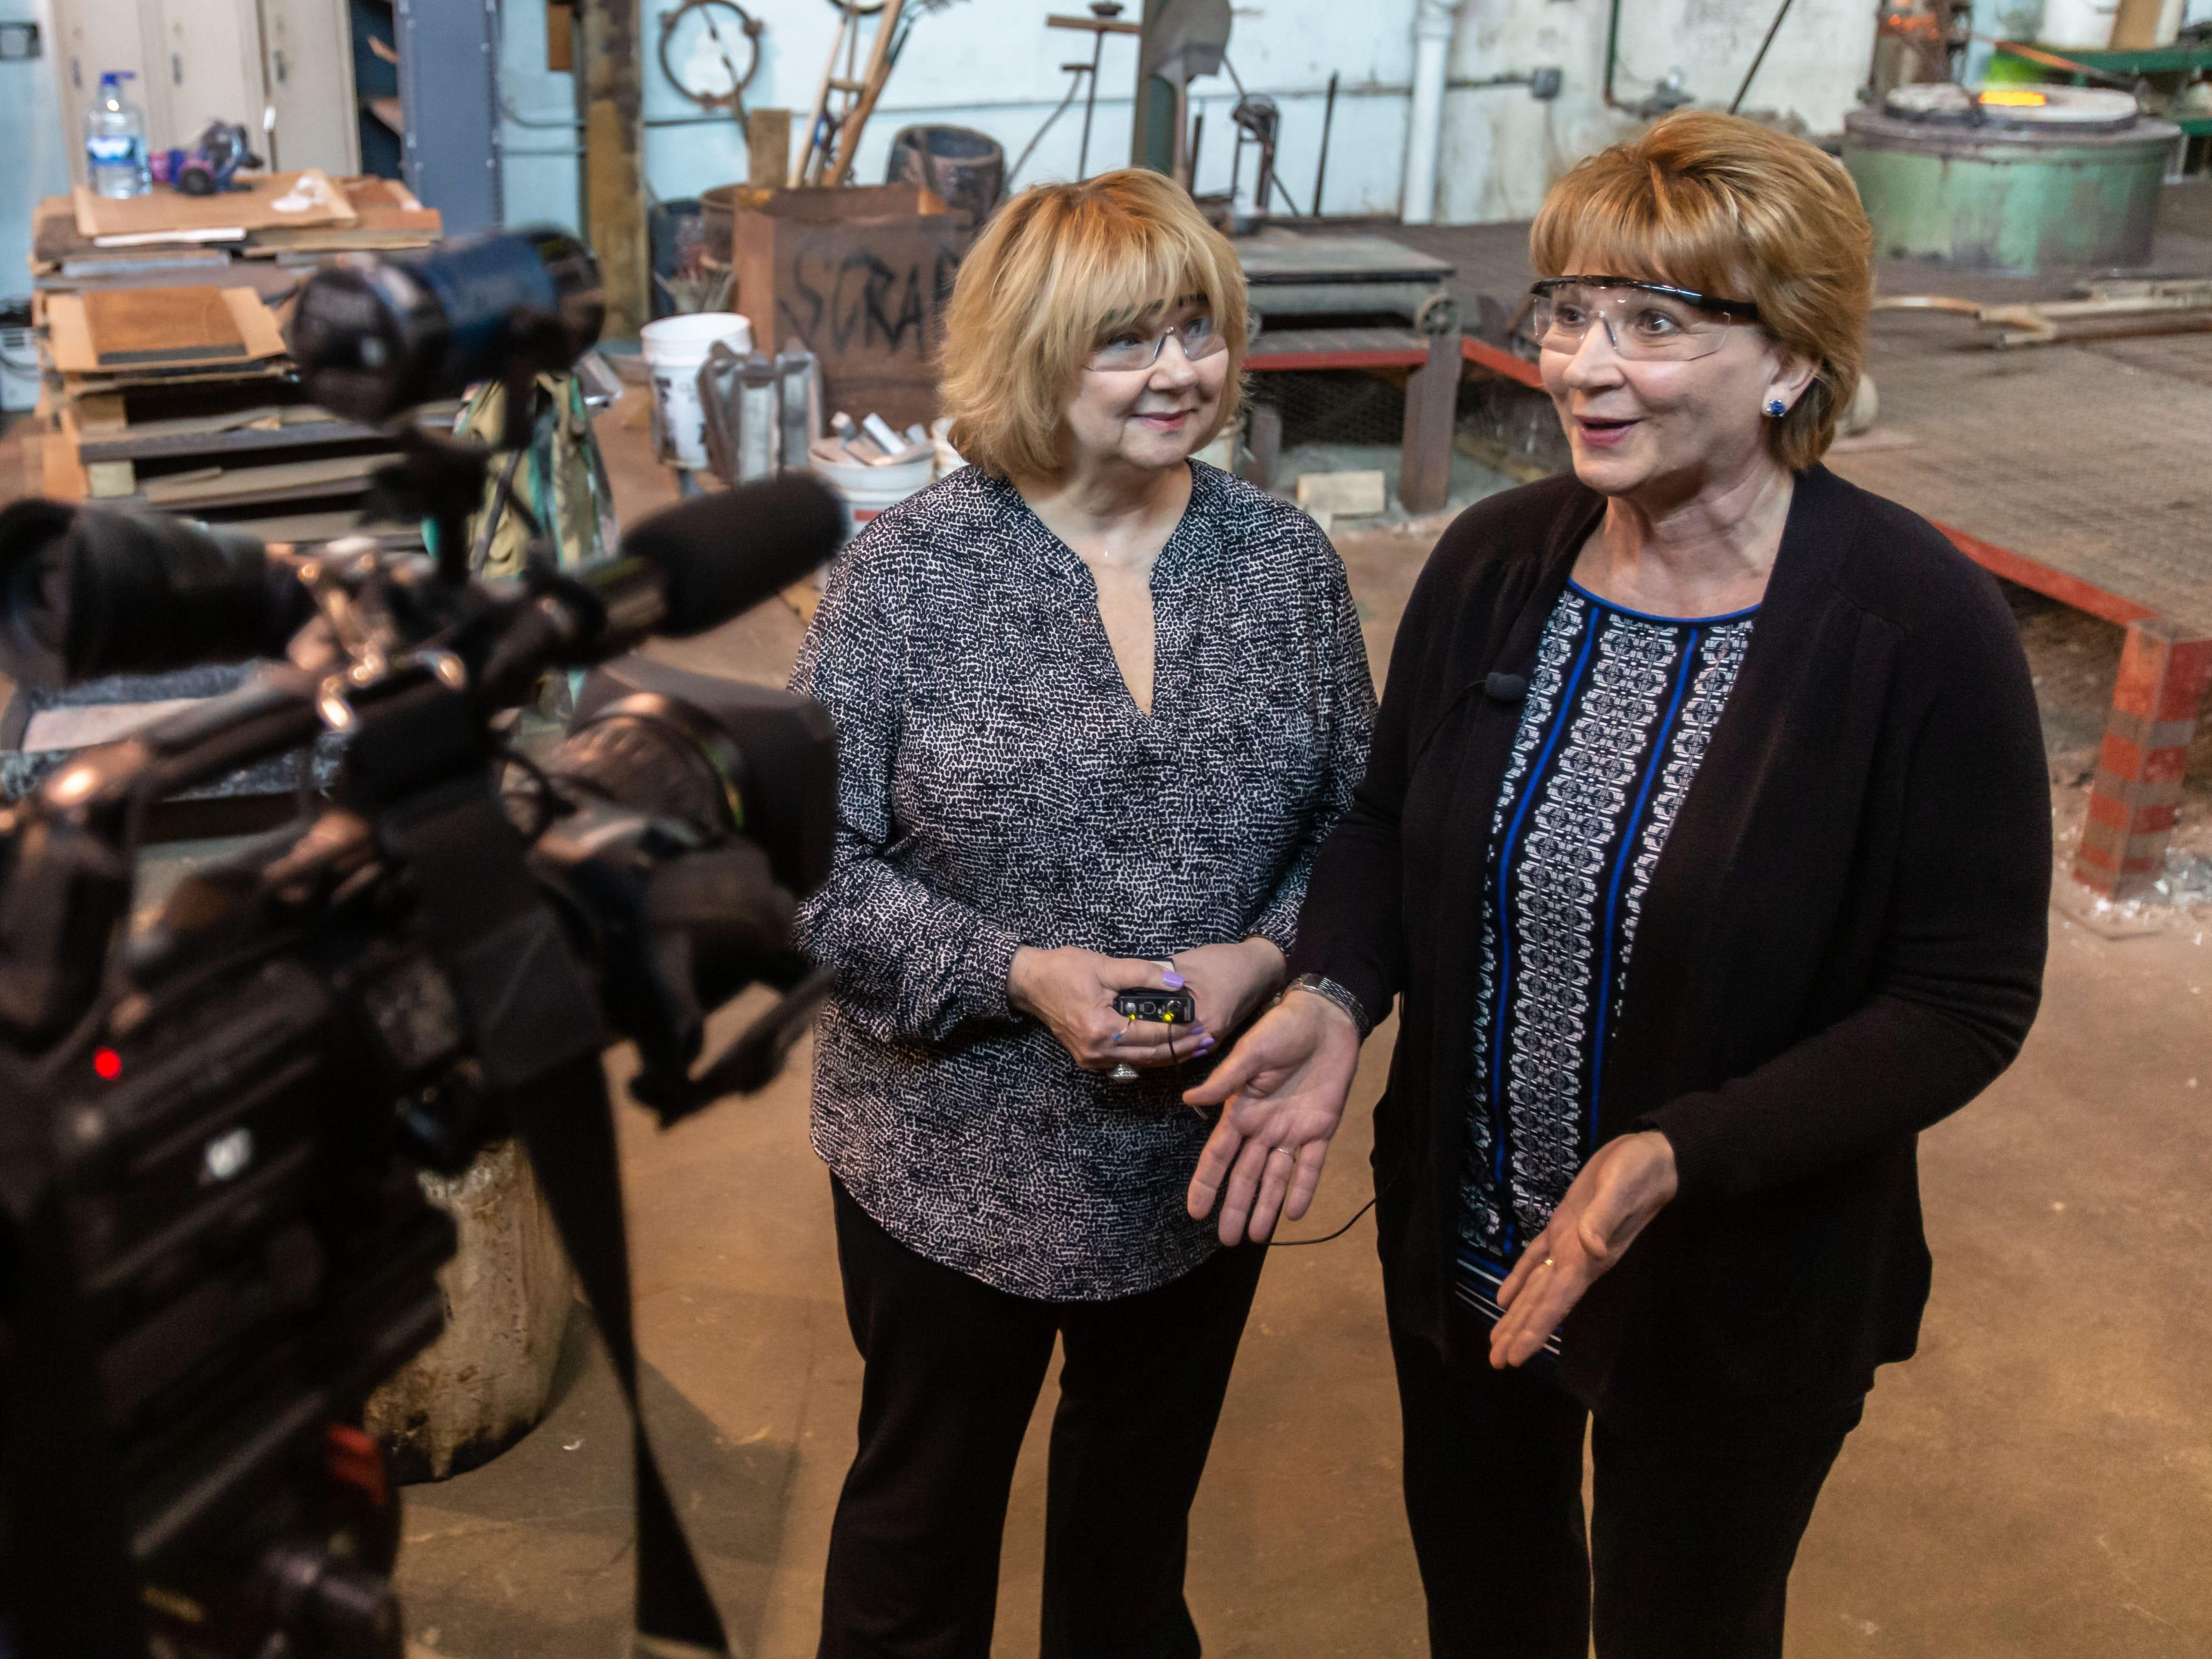 """Daughters of """"Da Crusher"""", Dawn Lisowski (left) and Sherri Brozoski, speak with media prior to the pouring of their father's bronze statue at Vanguard Sculpture Services in Milwaukee on Wednesday, March 27, 2019."""